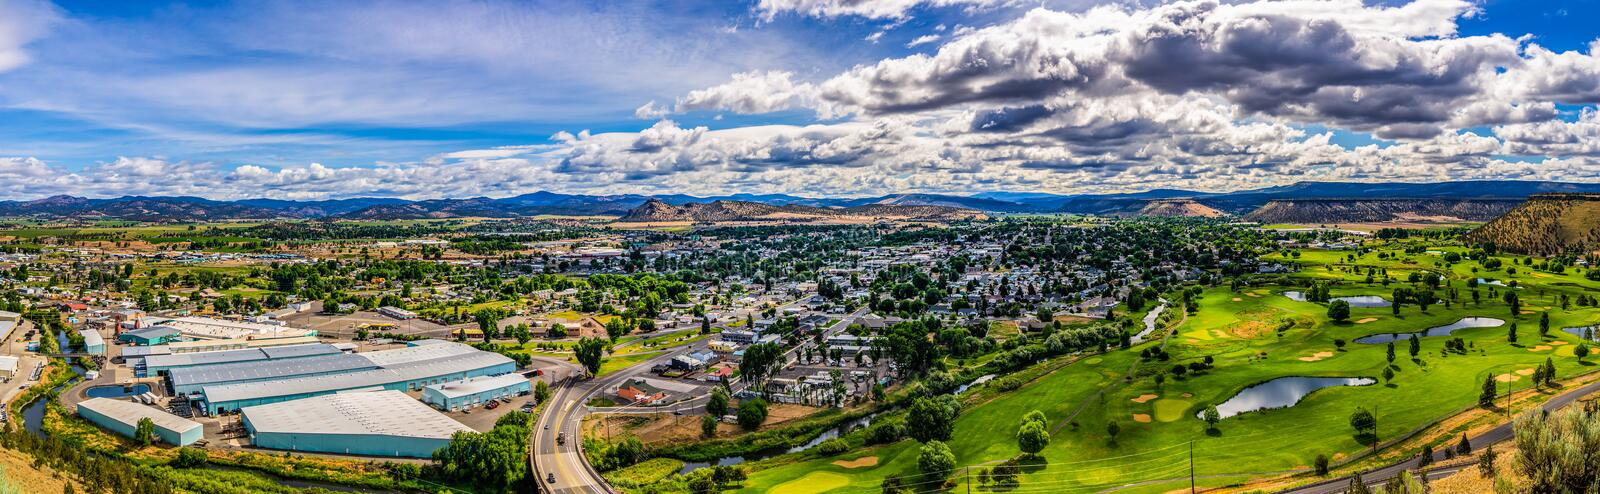 Overlooking panoramic view at Prineville. City from Ochoco State scenic viewpoint, Oregon, USA stock photo